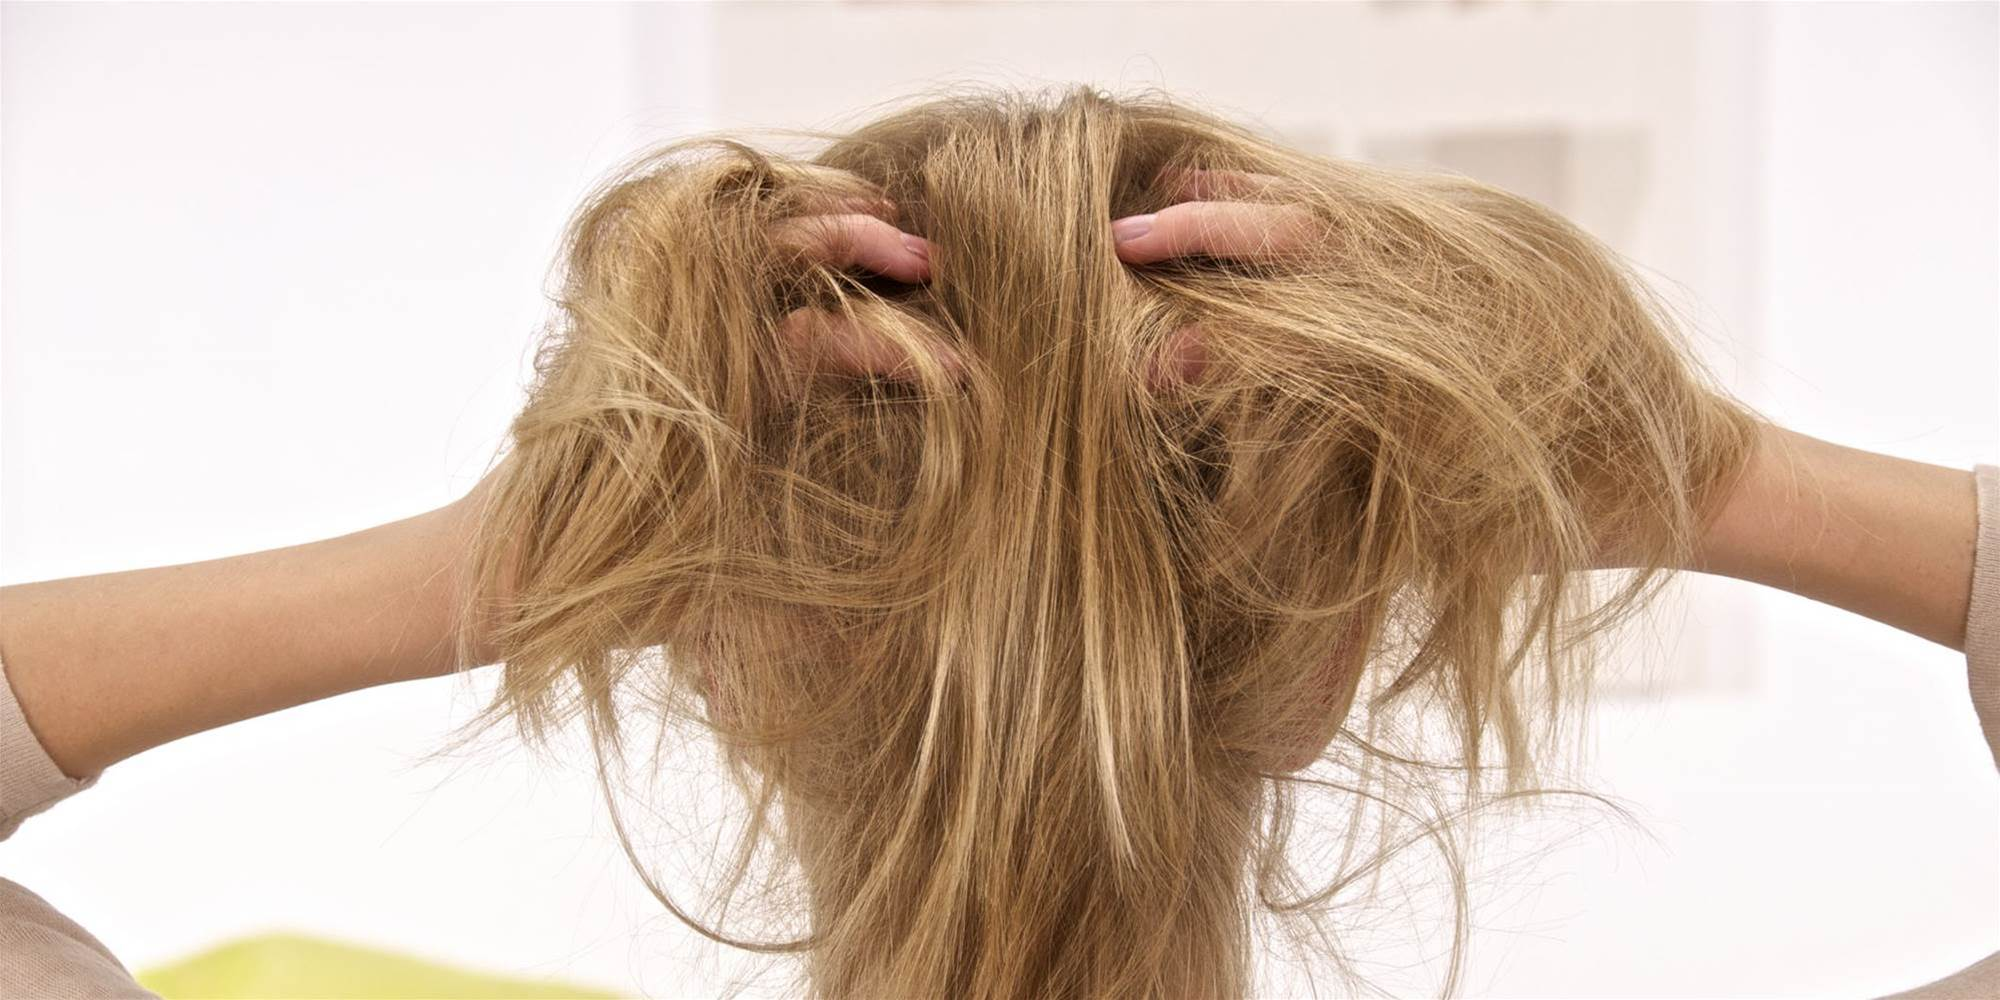 5 Proven Scalp Psoriasis Treatments Dermatologists Swear By